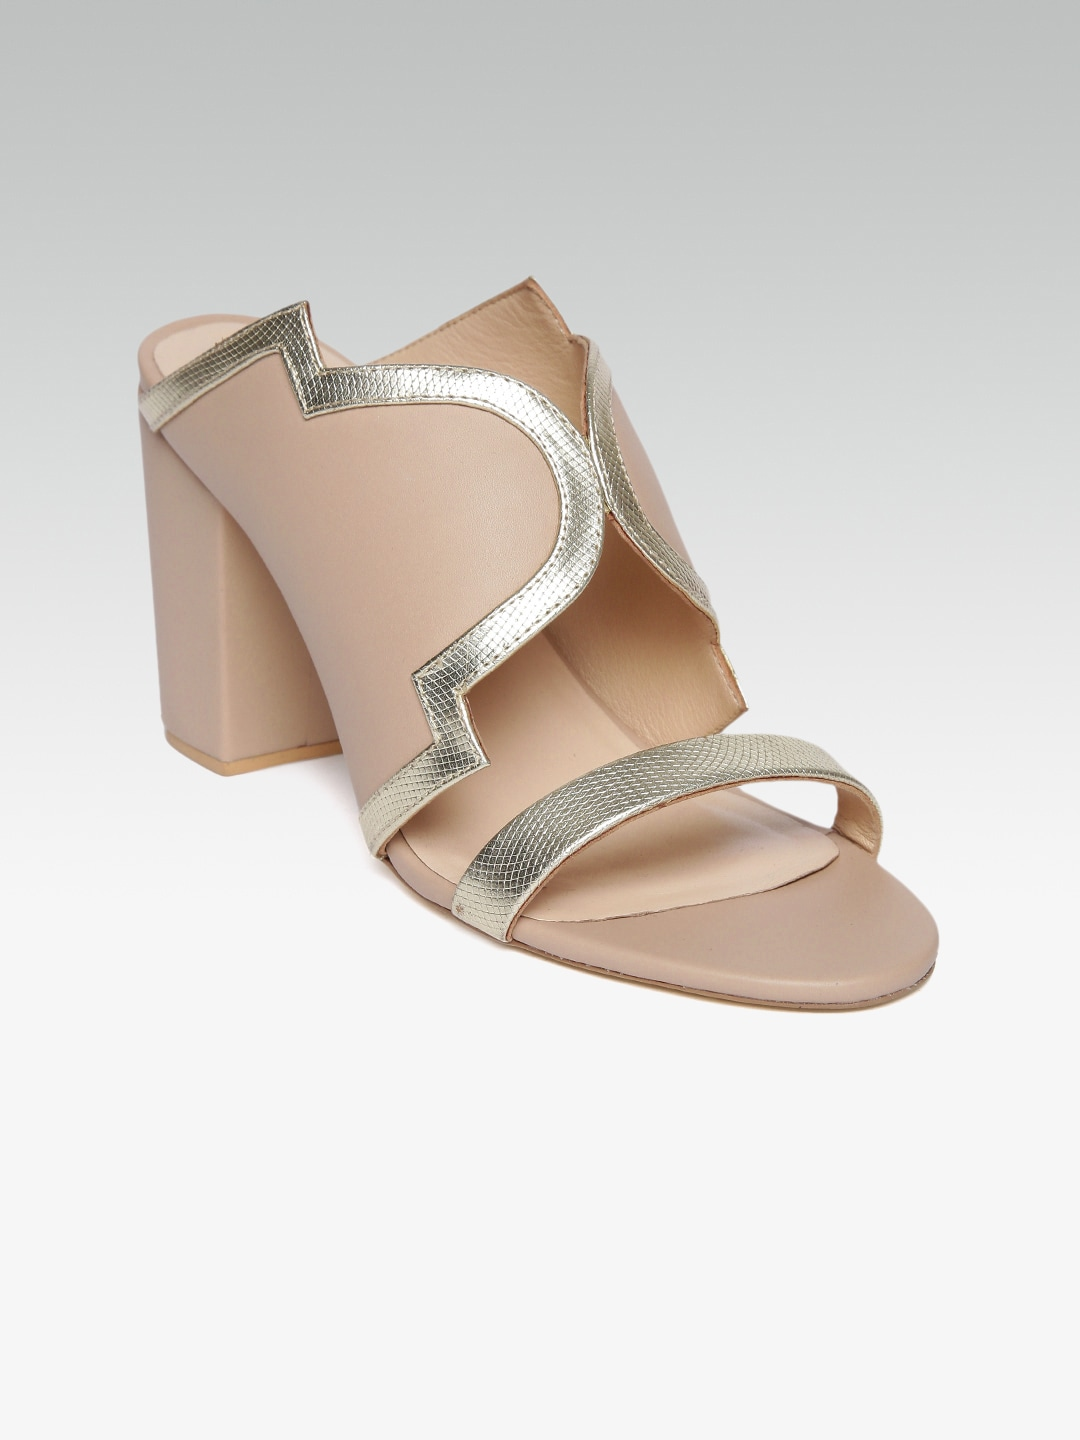 db79295d6e Women Nude Shoes - Buy Women Nude Shoes online in India